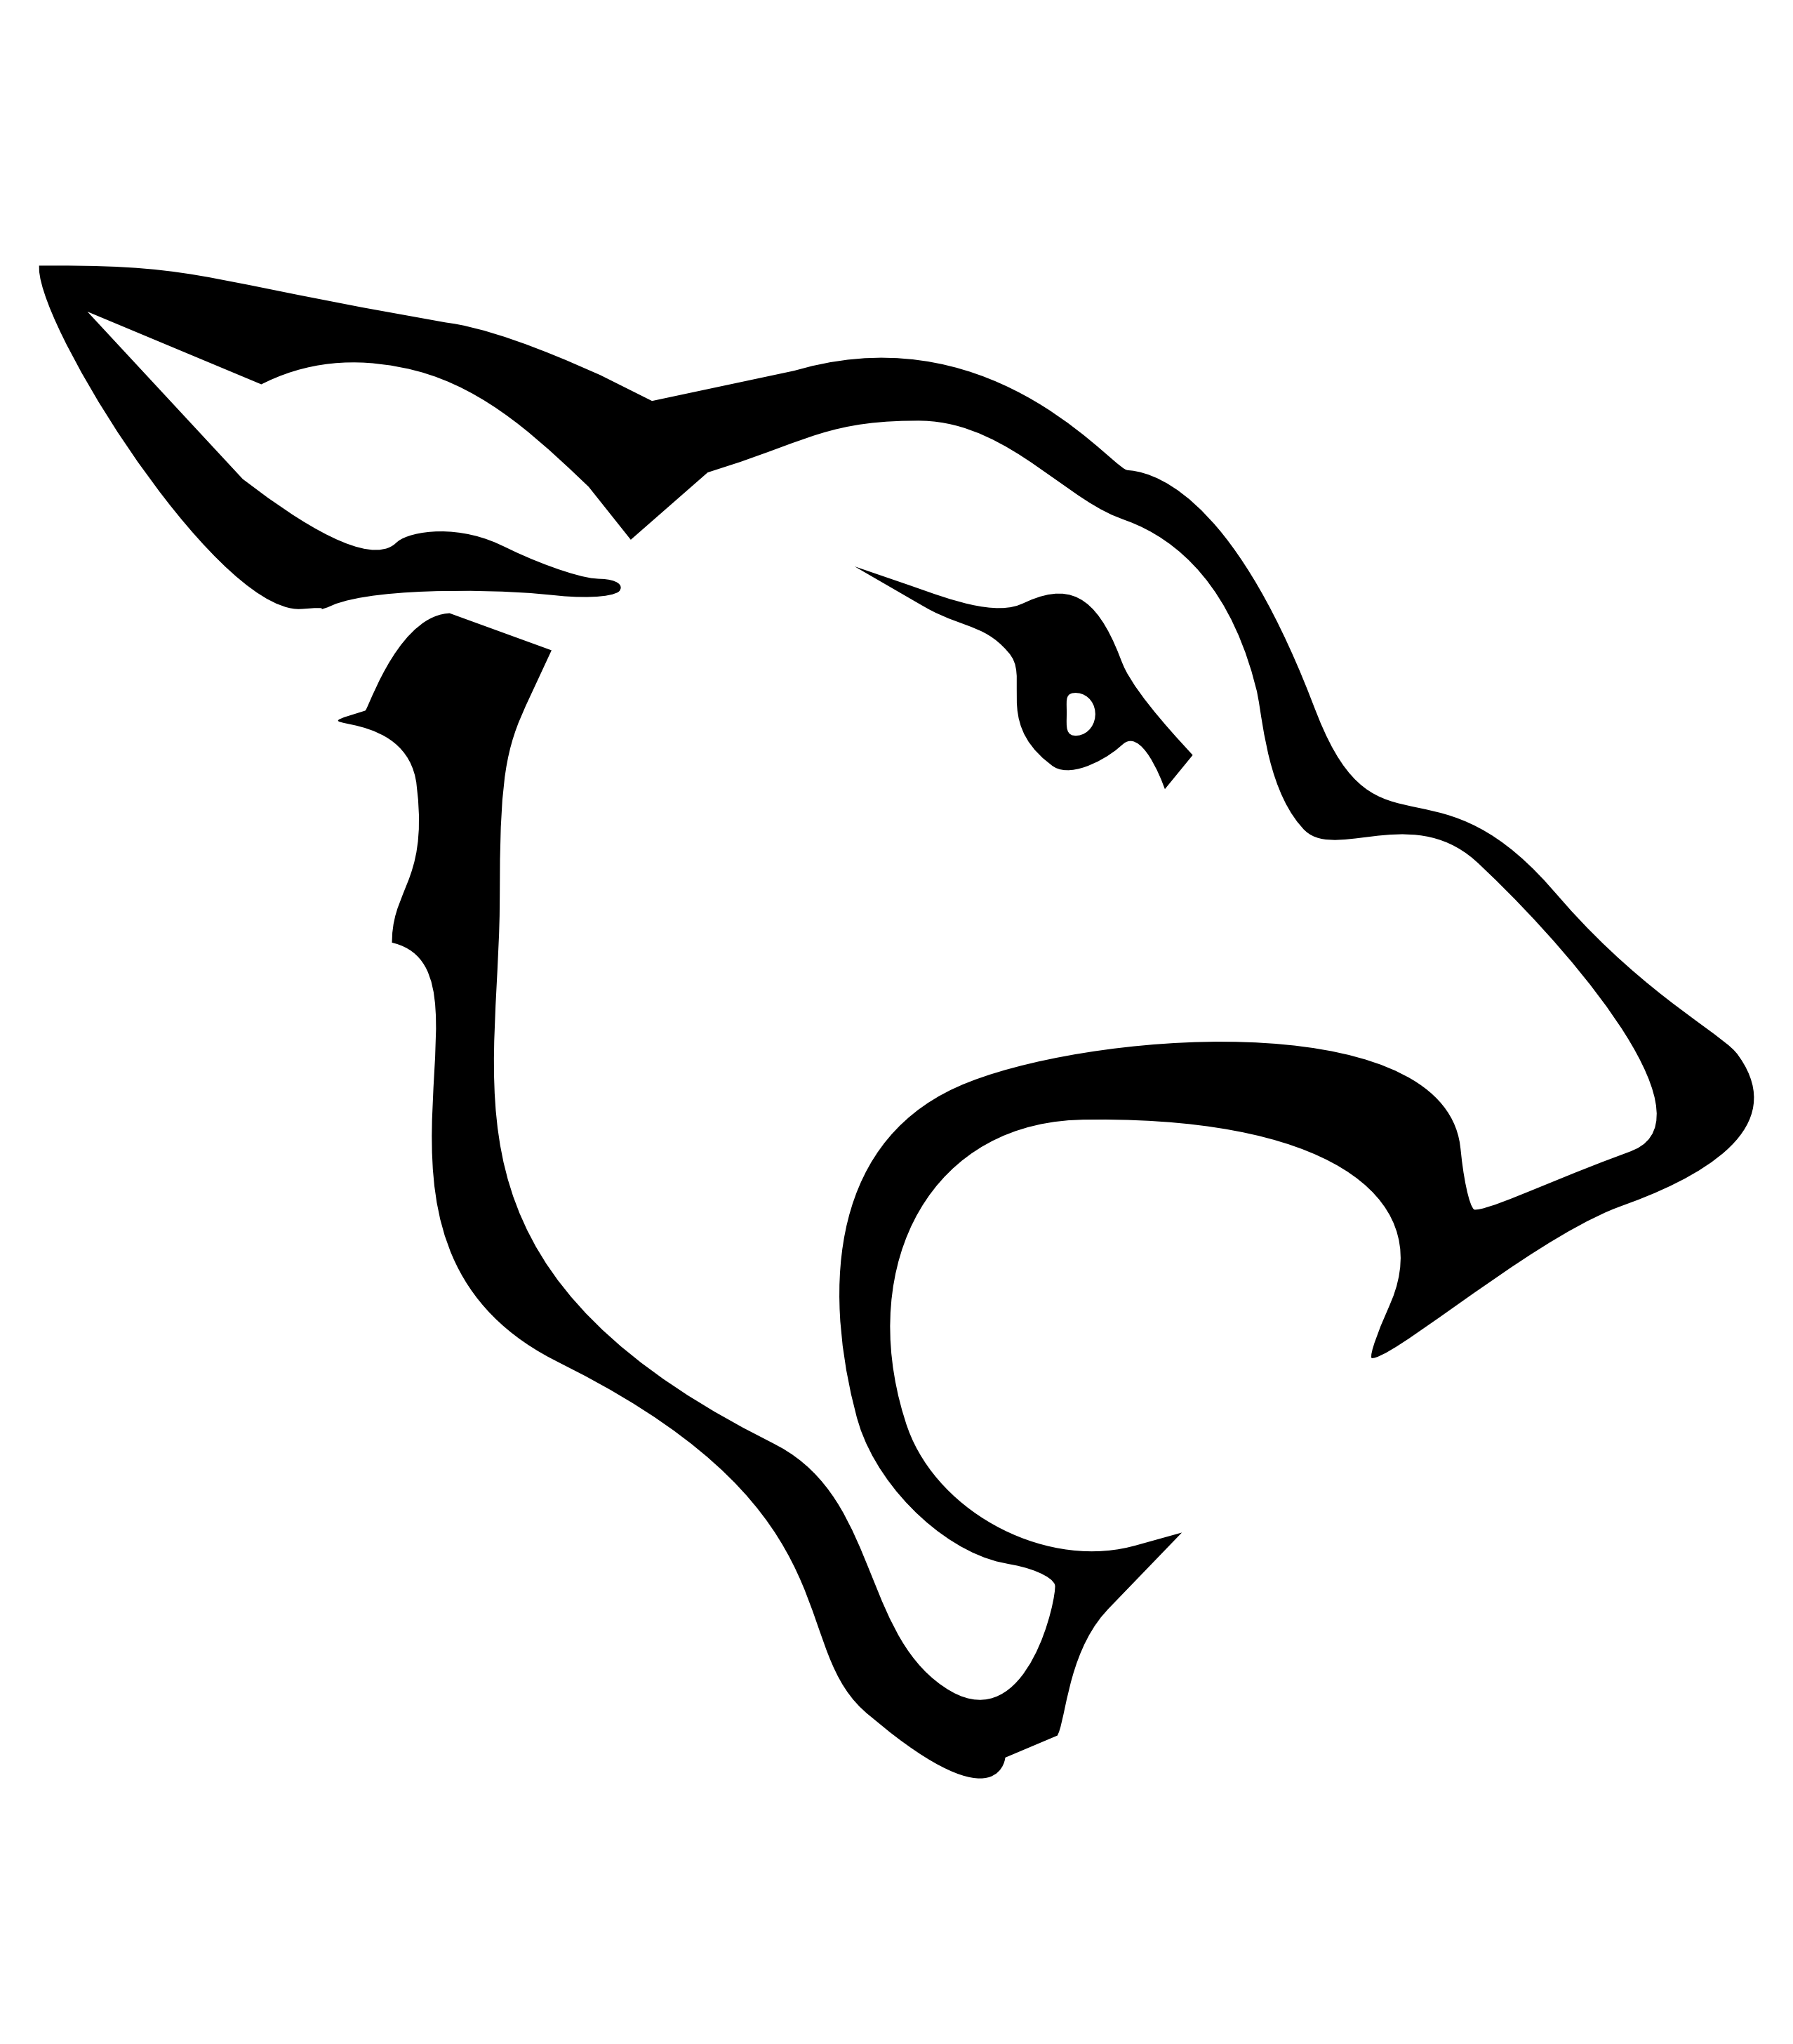 White Wolf svg #18, Download drawings